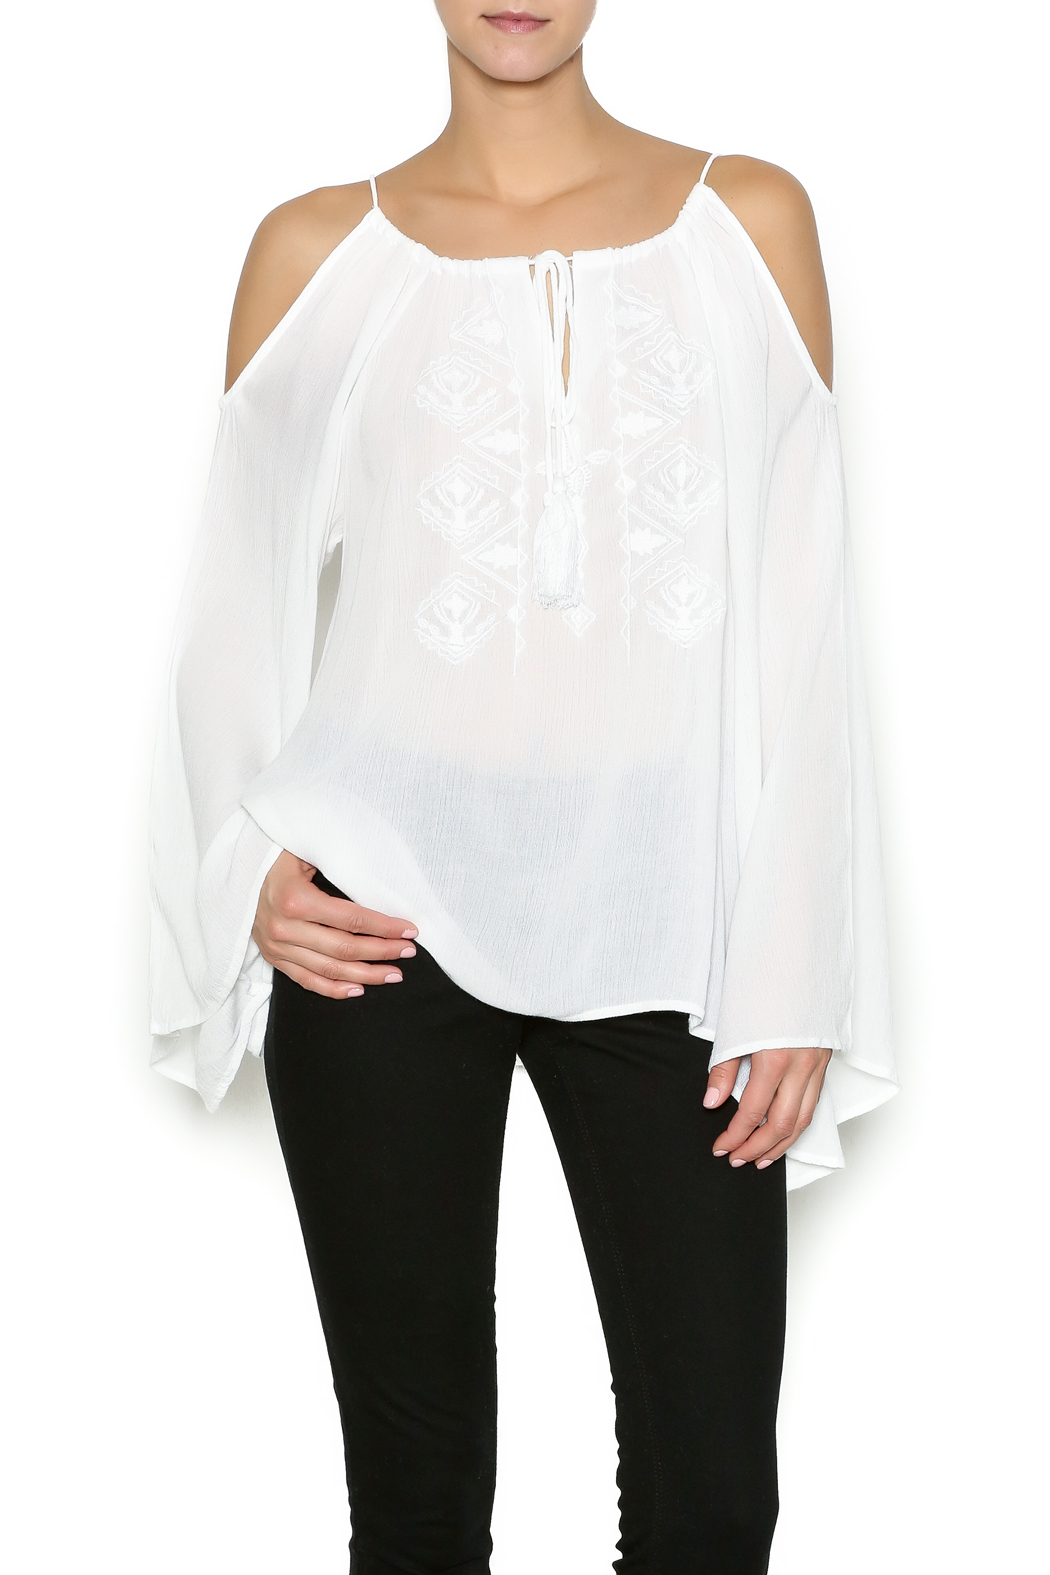 9db969ae80adc Elan Cold Shoulder Top from New York City by Dor L Dor Resort ...